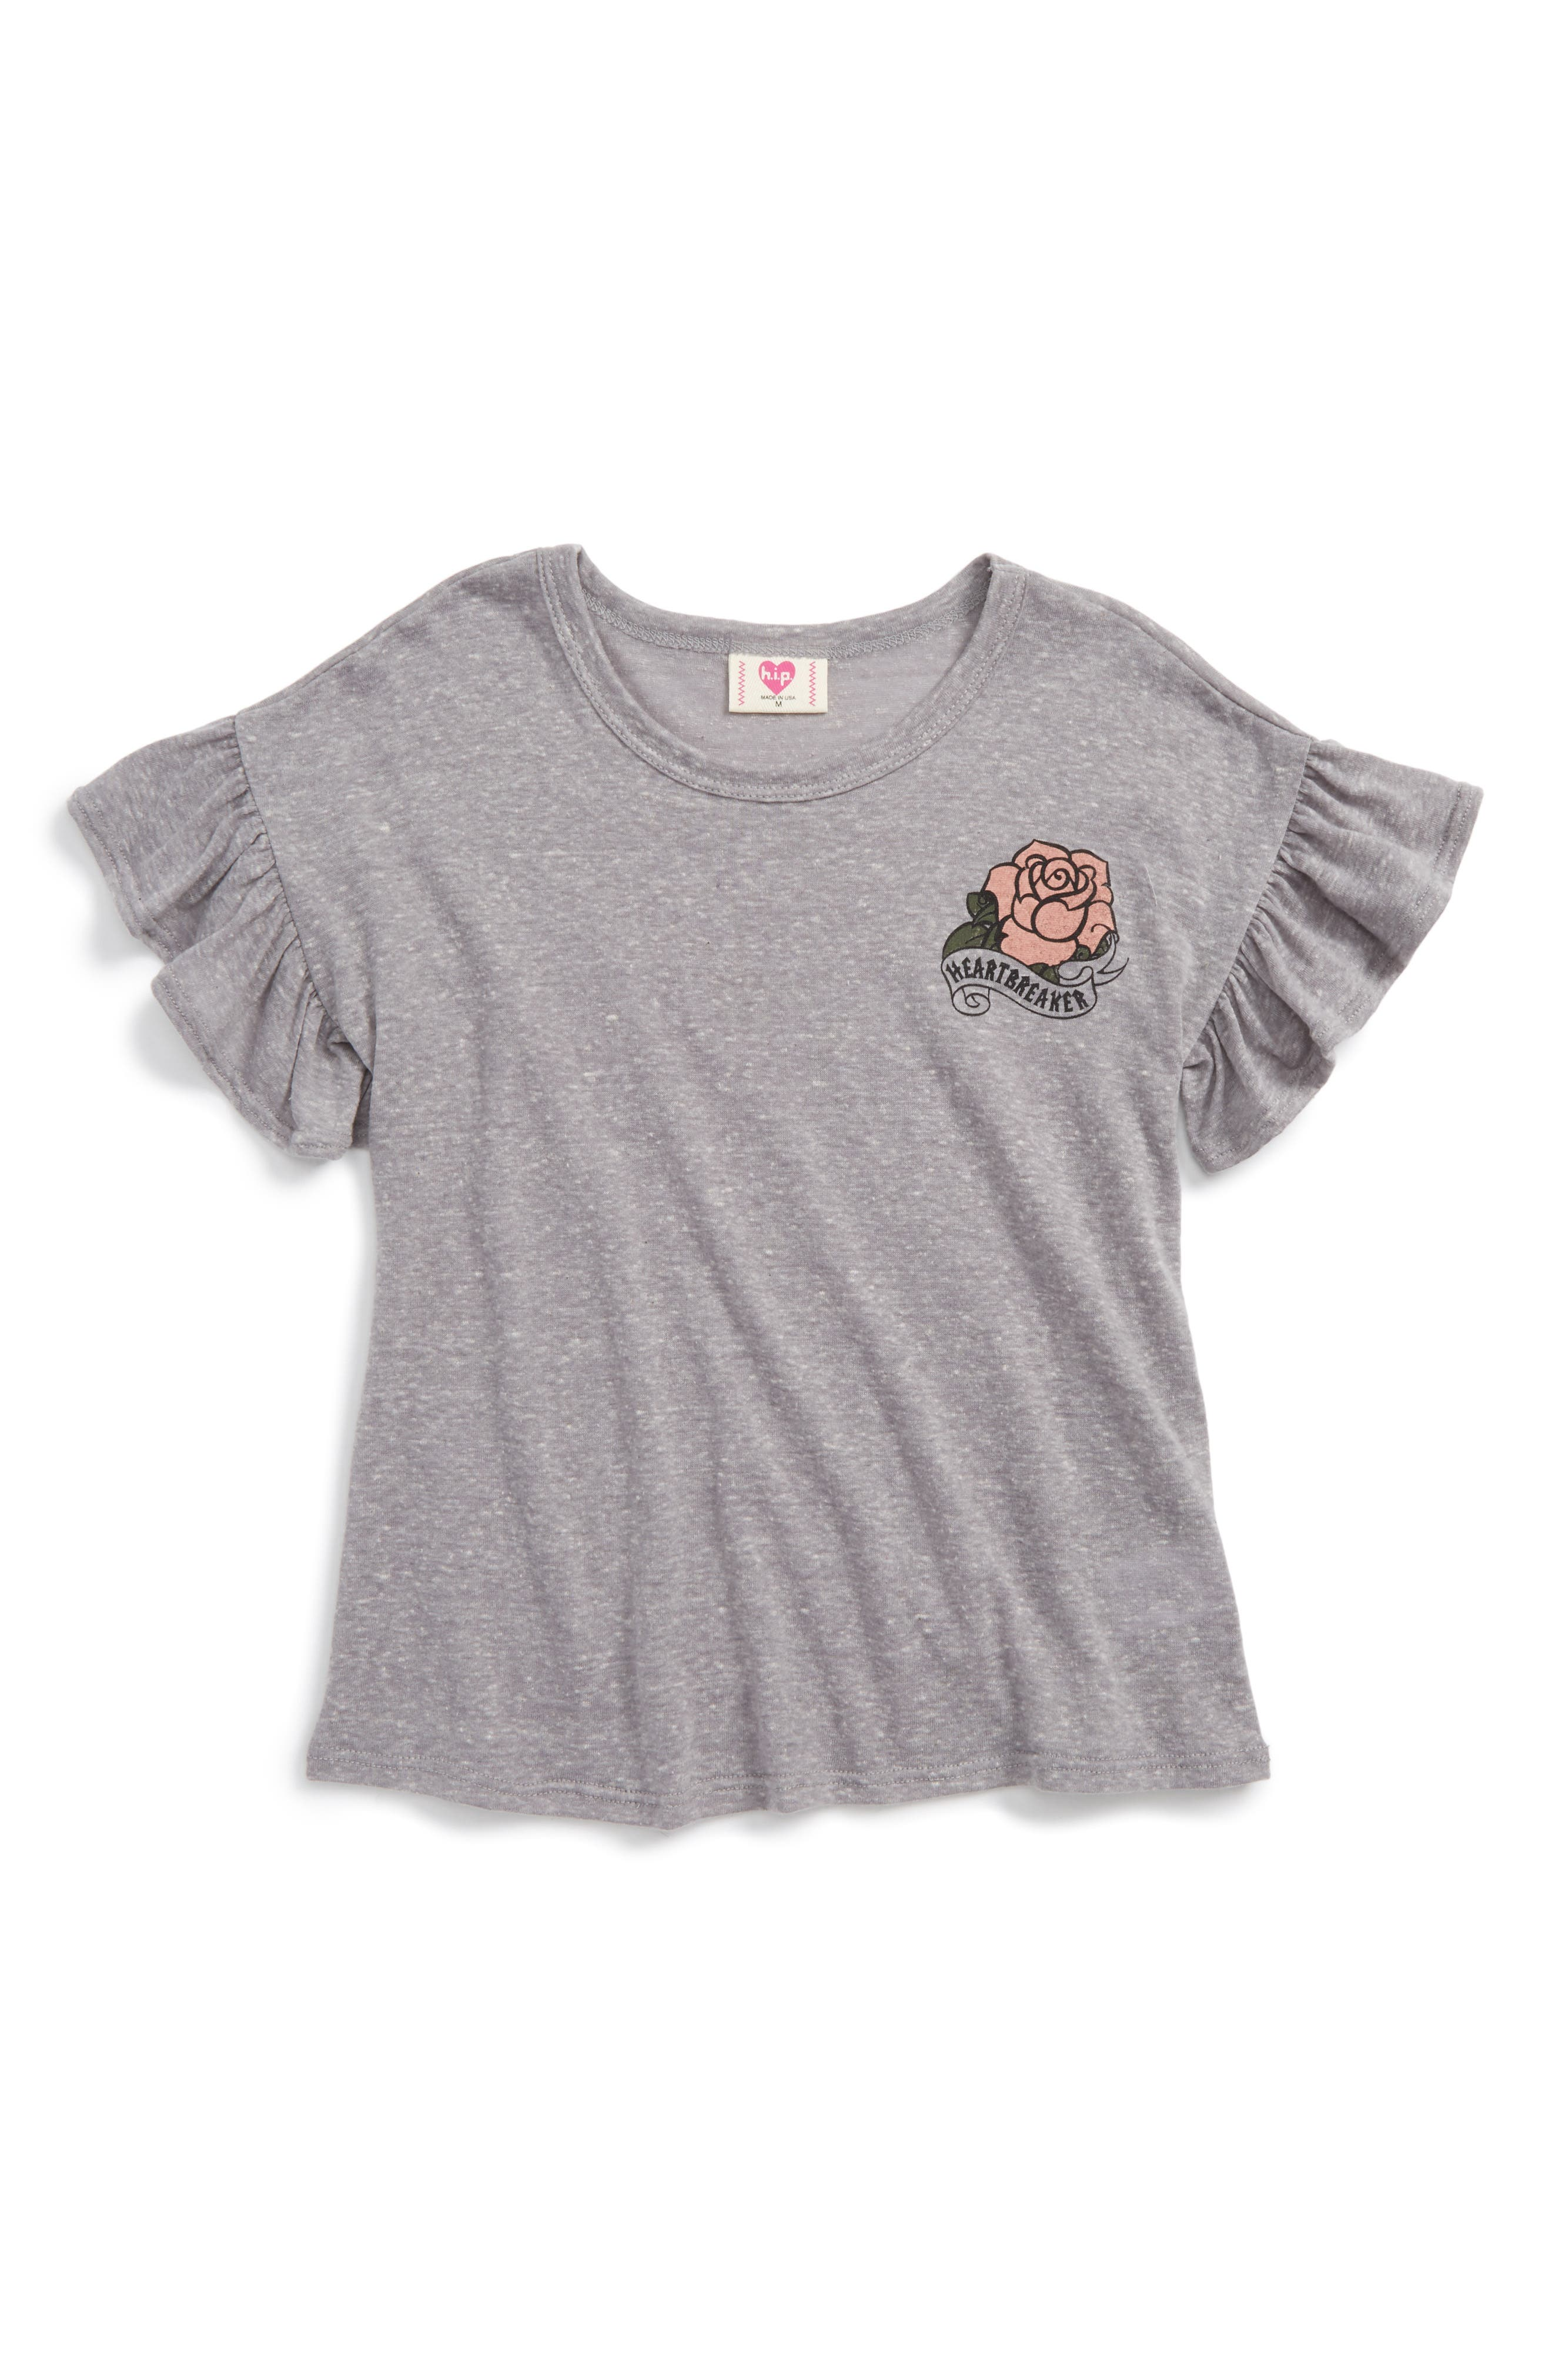 Main Image - h.i.p. Rose Graphic Flutter Sleeve Tee (Big Girls)